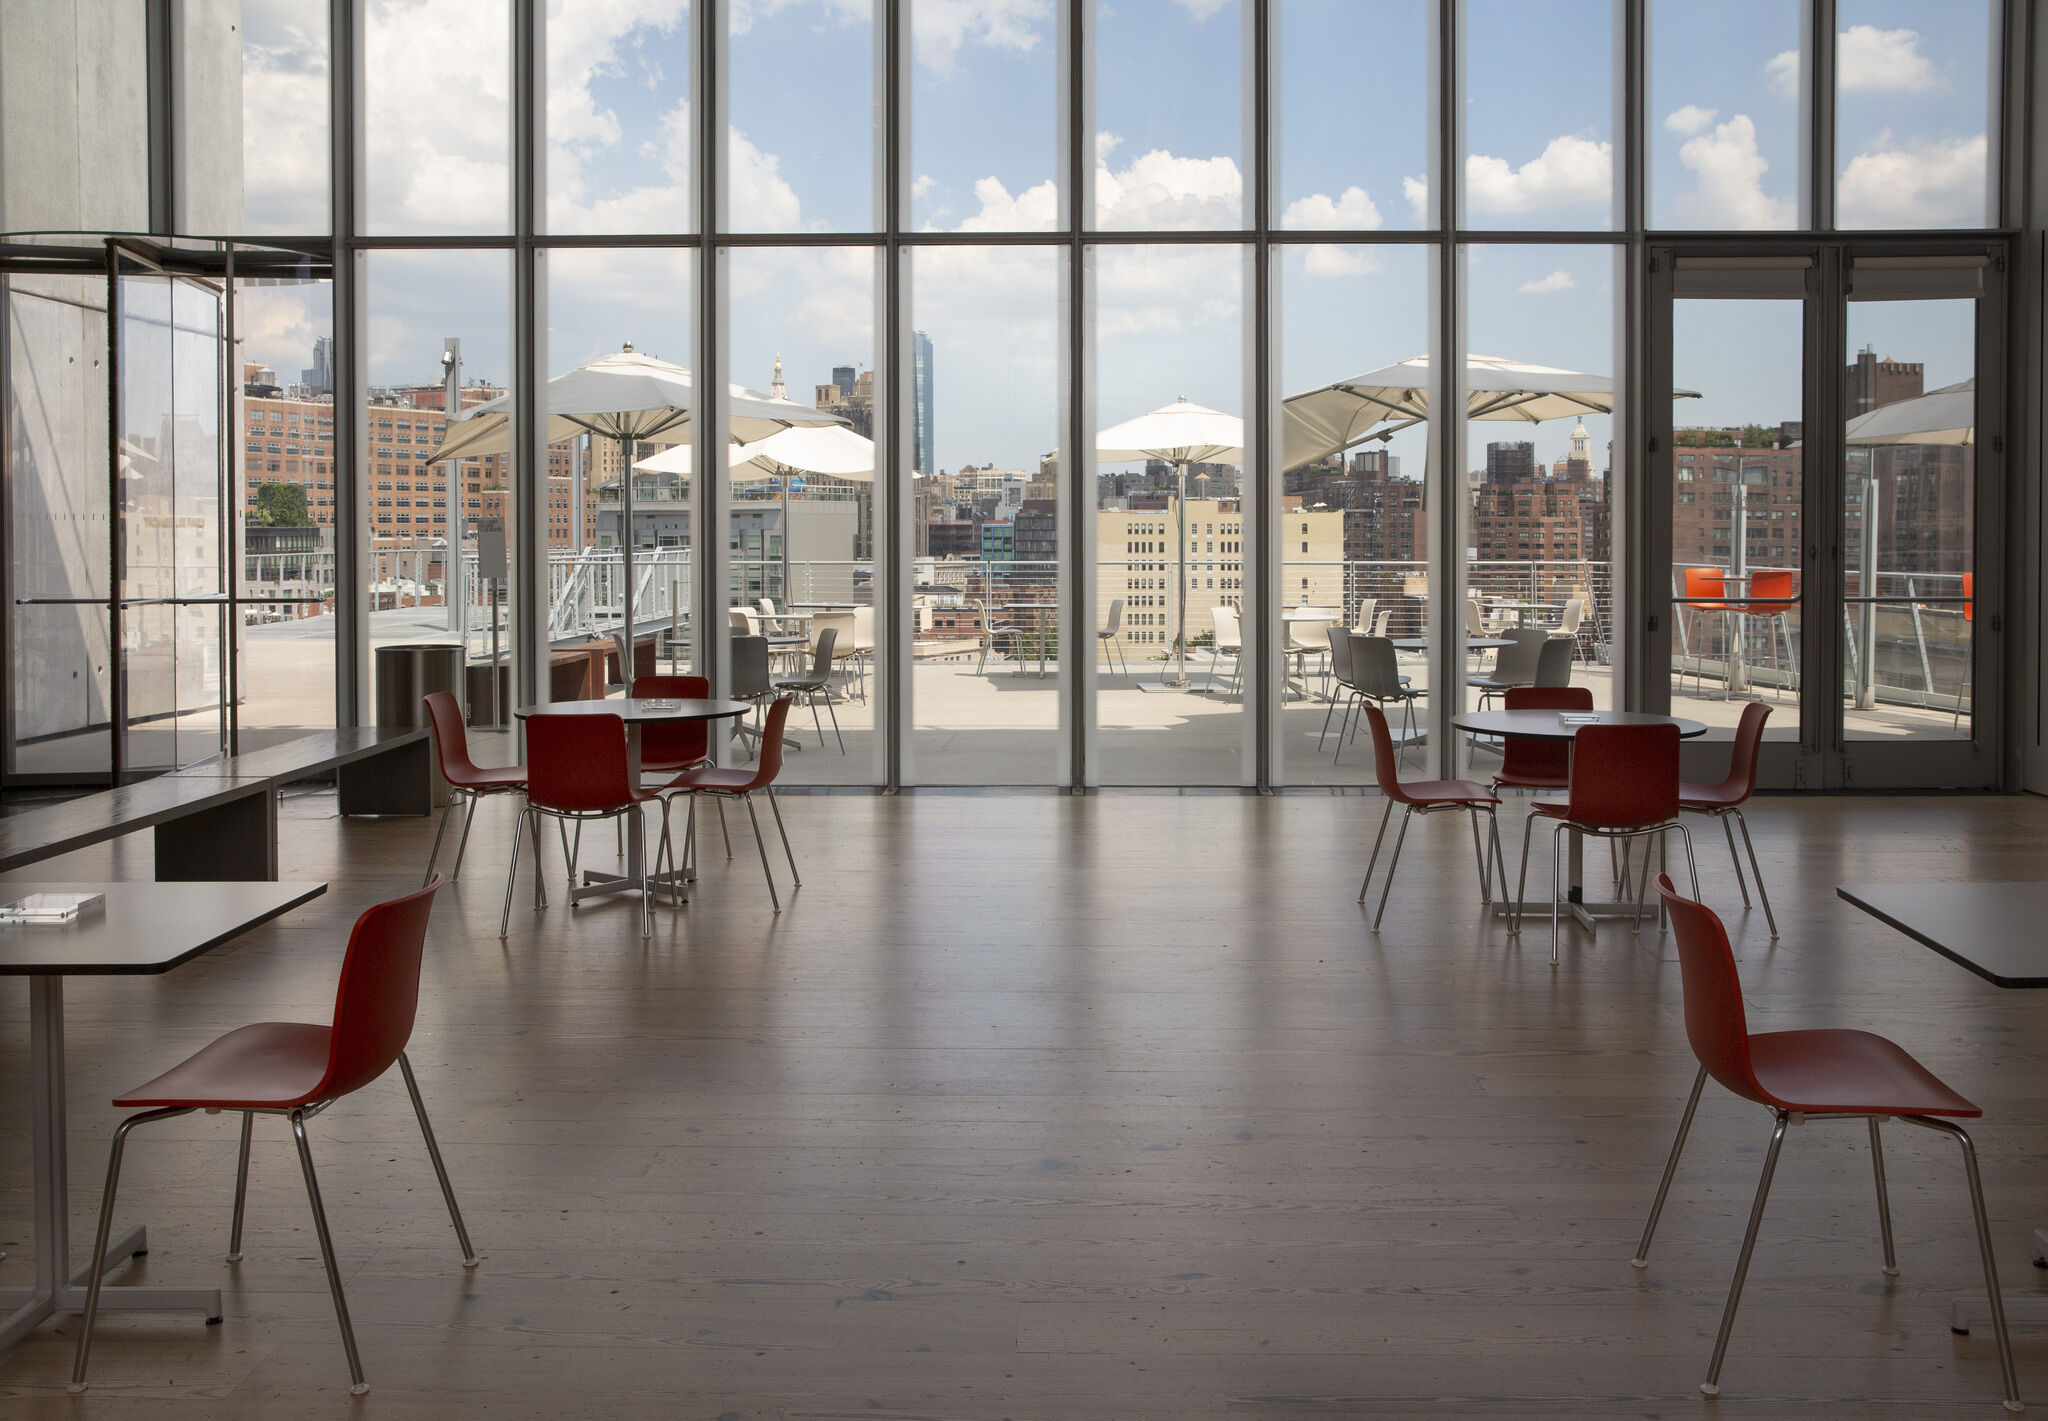 Open, interior dining space with tables and chair symmetrically arranged, looking out through floor-to-ceiling glass windows onto an open terrace space.